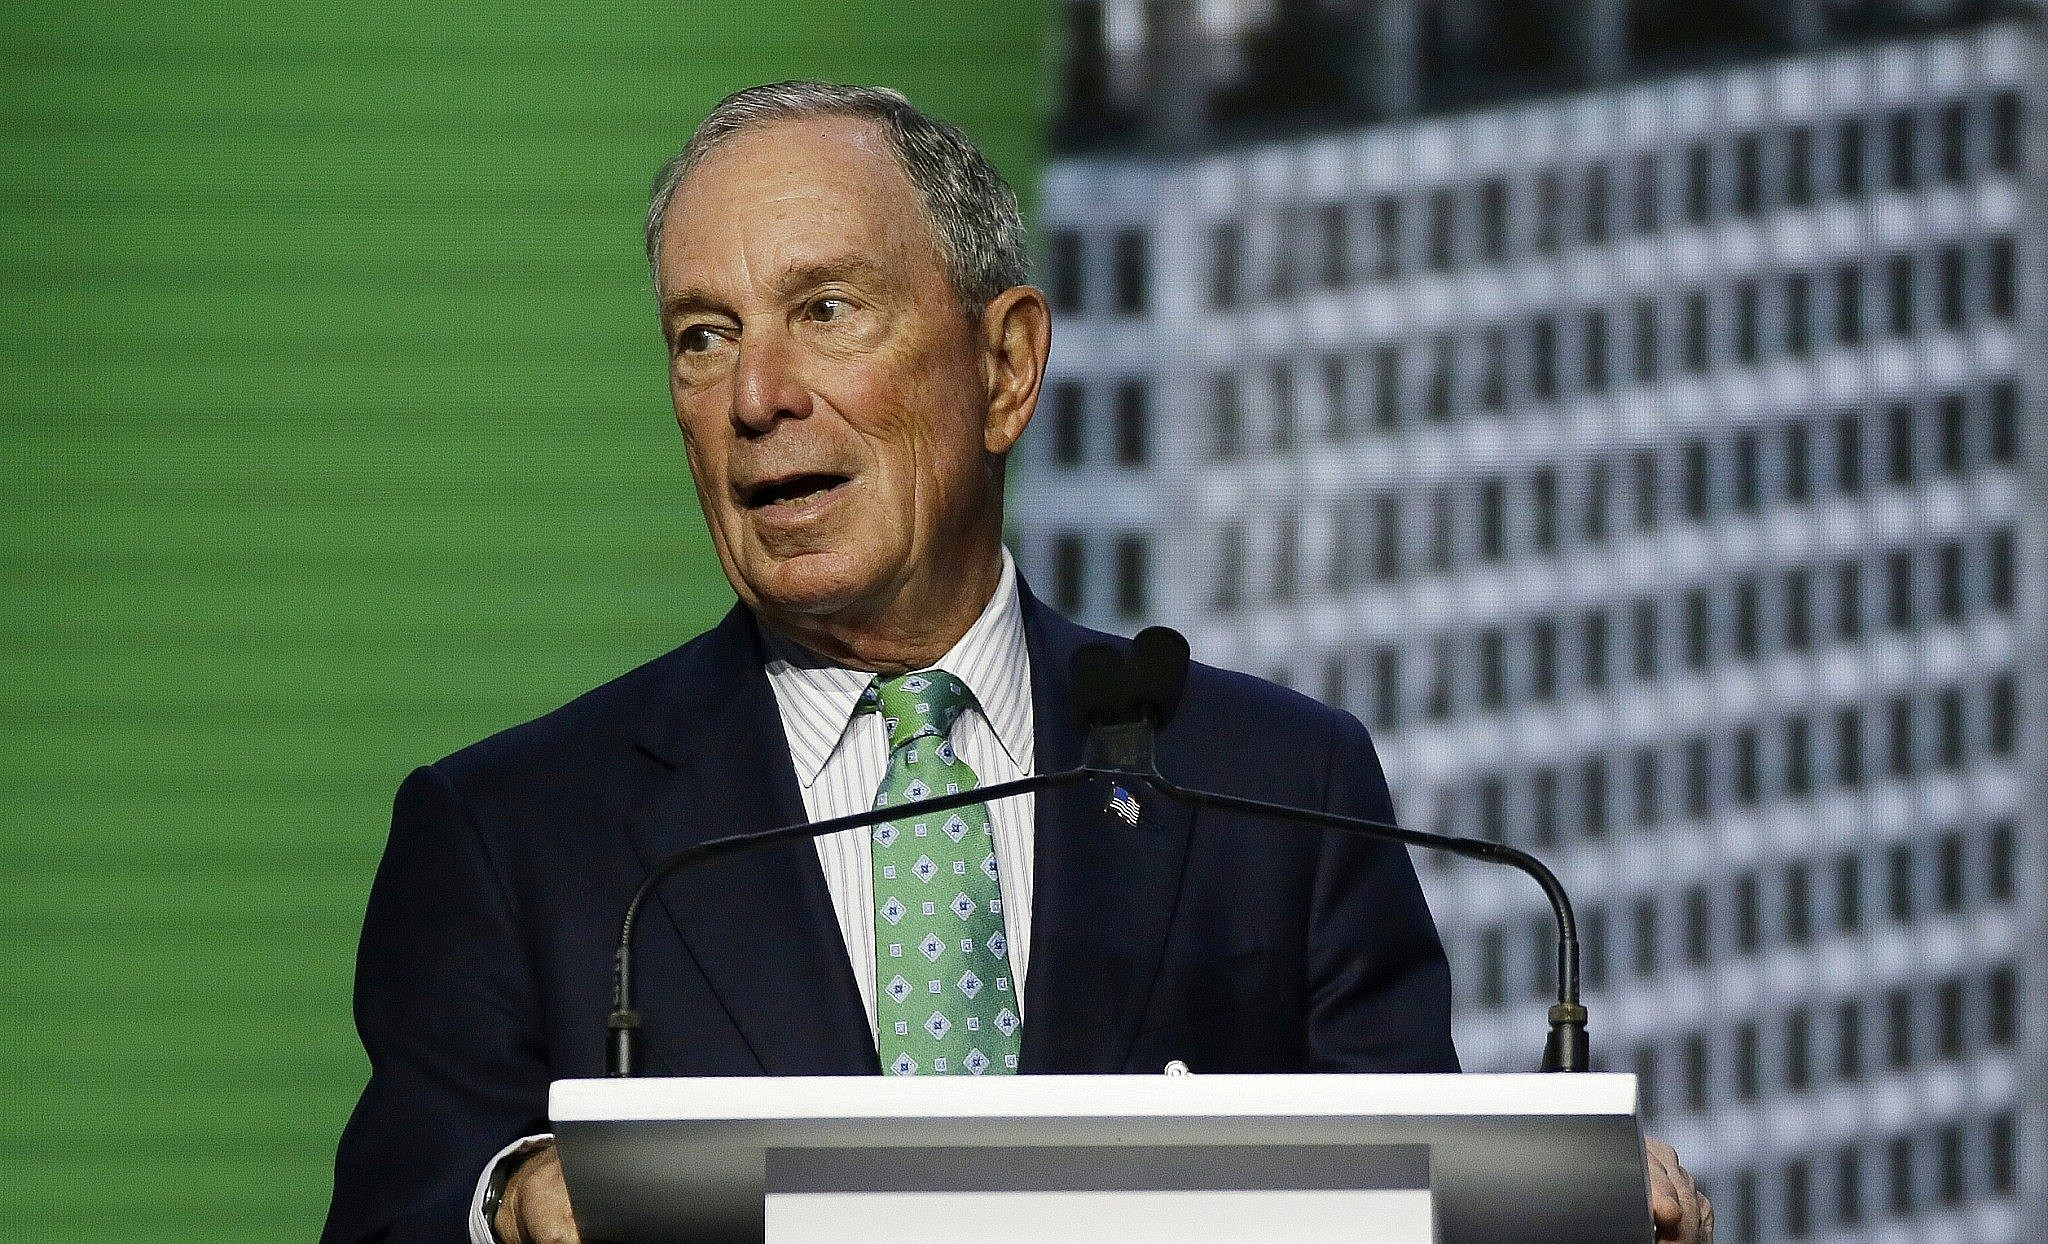 Michael Bloomberg reregisters as a Democrat